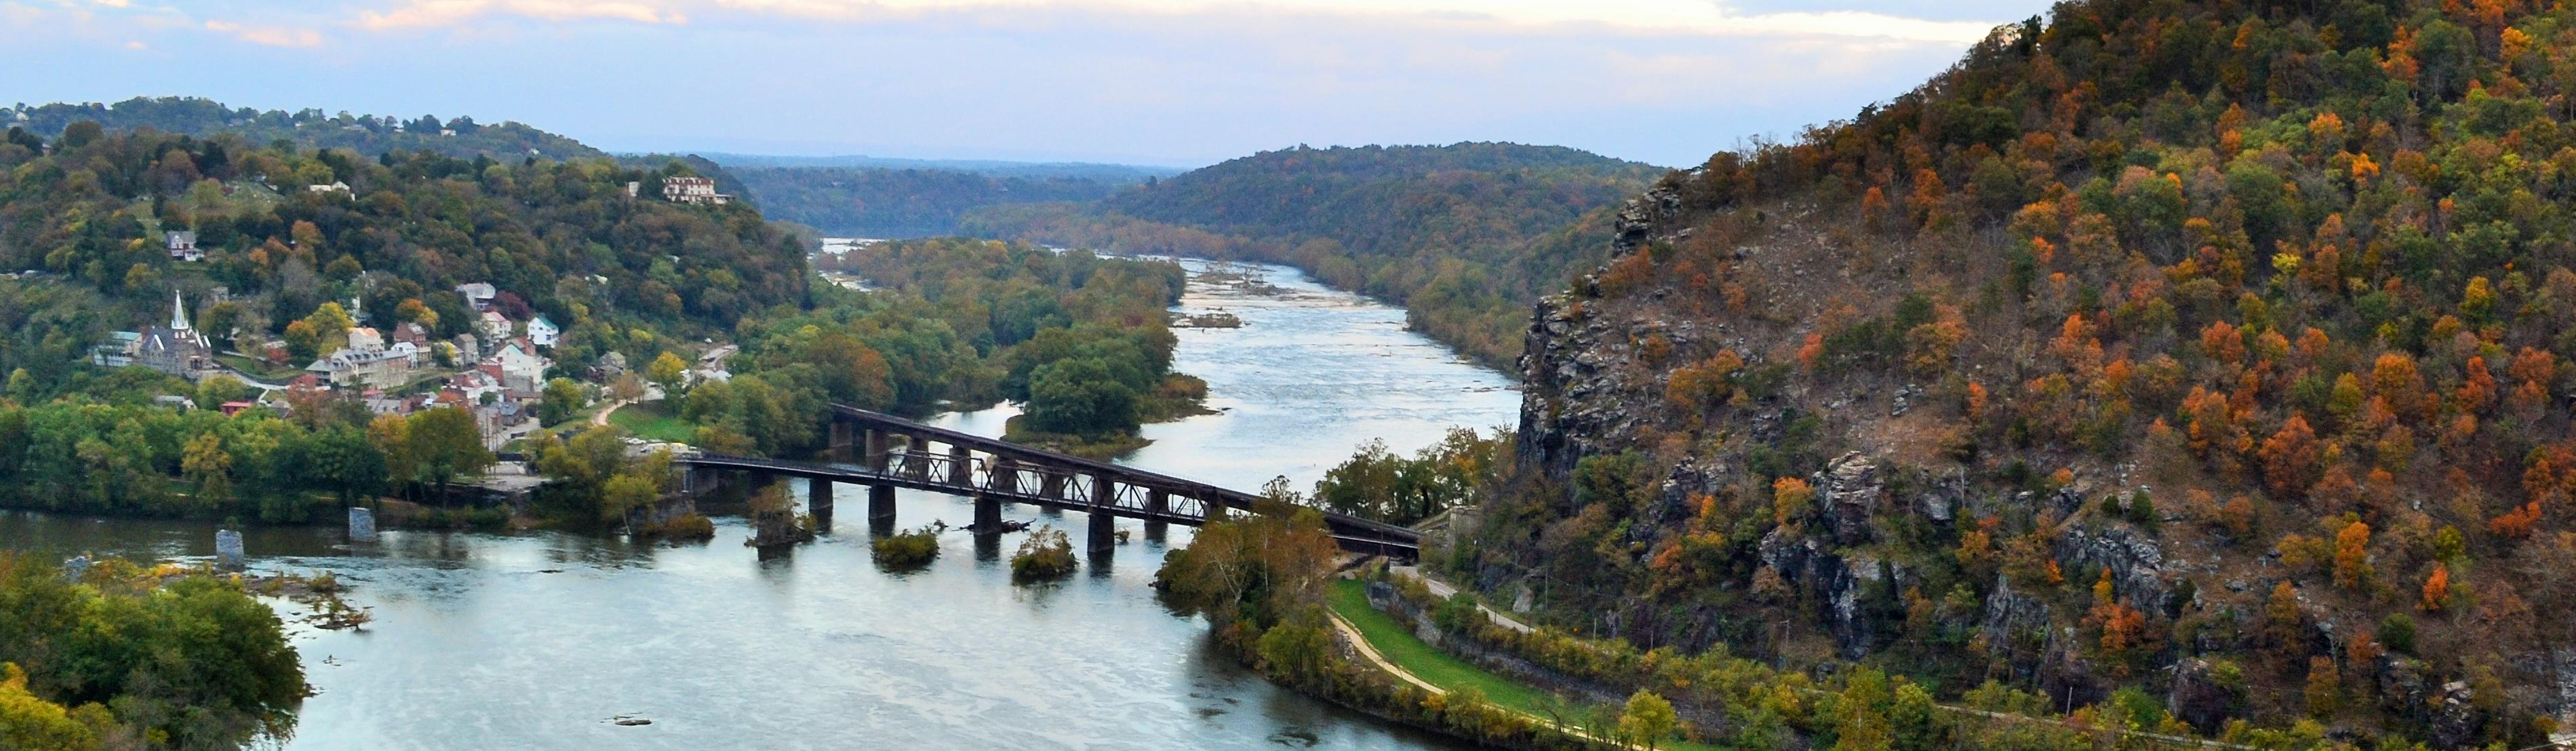 Harpers Ferry, West Virginia is just a 2.5 hour round-trip train ride away and with immediate access to the Appalachian Trail. (Image: Courtesy National Park Service)